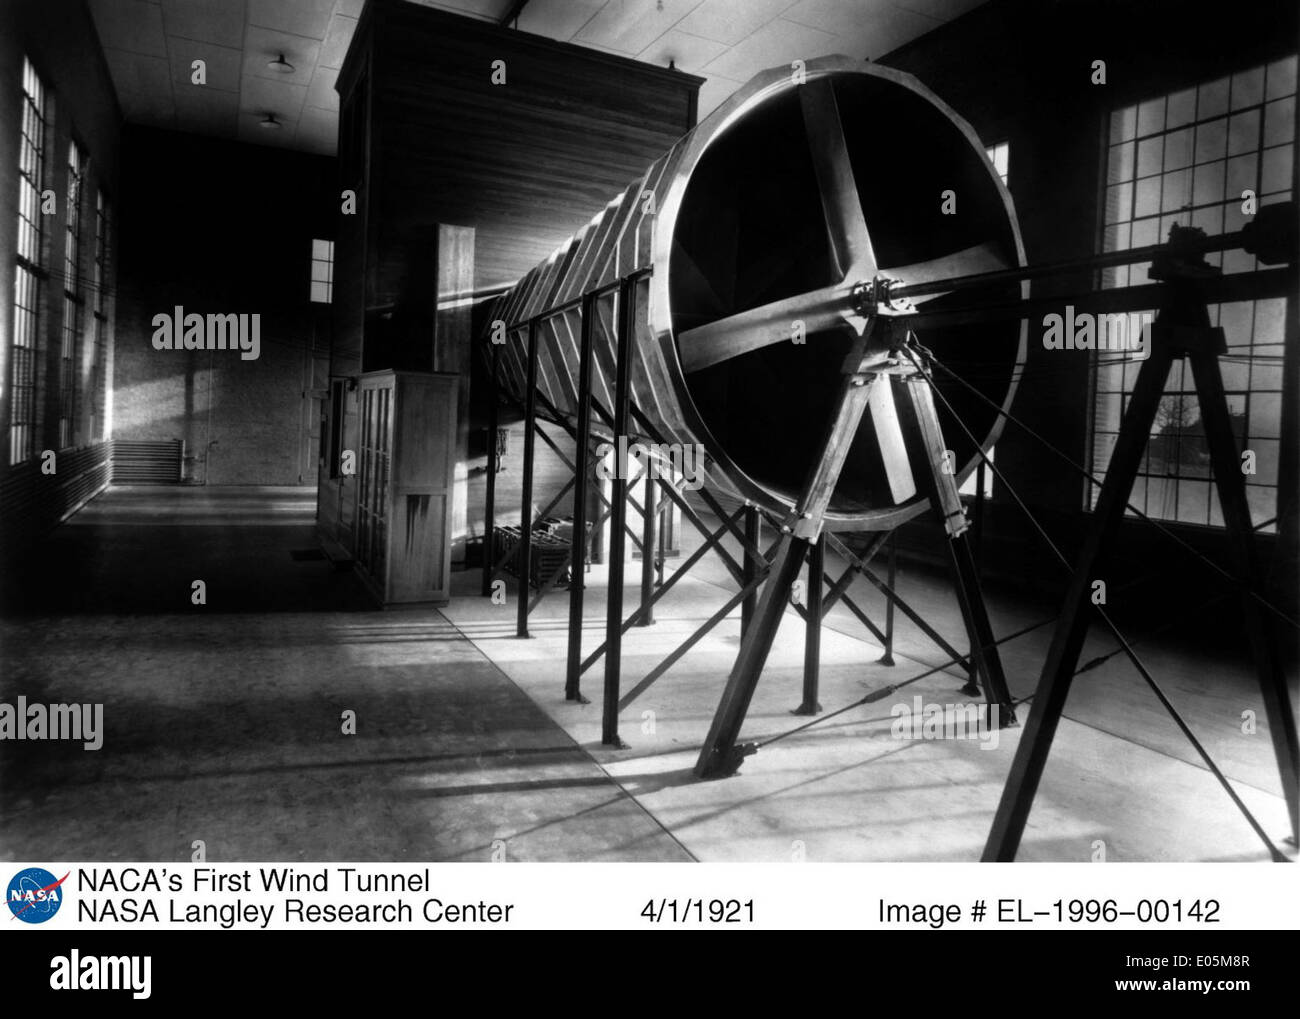 The NACA's First Wind Tunnel - Stock Image